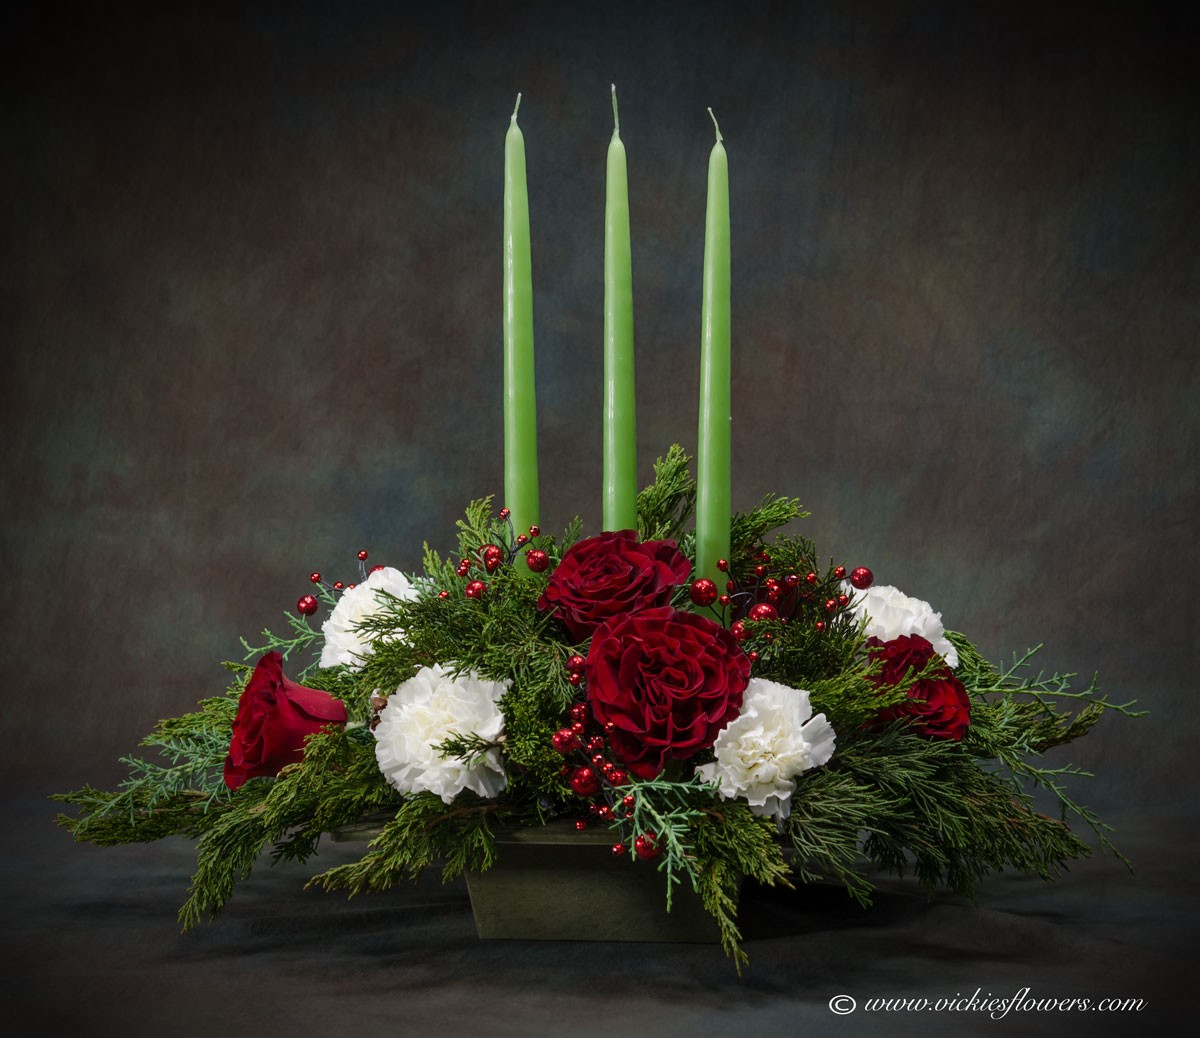 Photograph of We custom make every flower arrangement in house to your specifications. Beautiful holiday 3 candle centerpiece, perfect for any Christmas gathering.